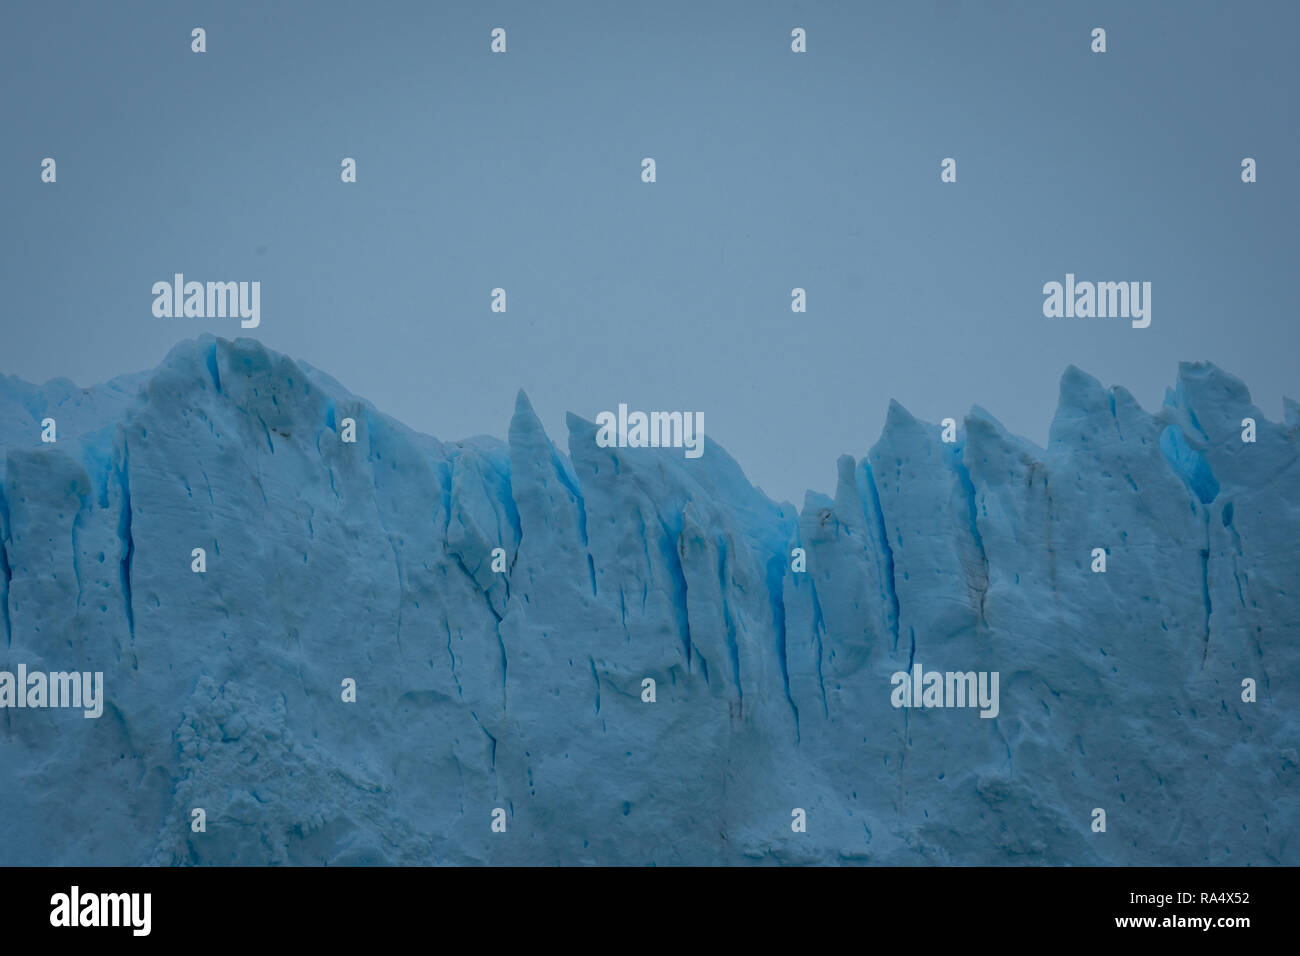 Close up on fractured drift ice off a glacier in Patagonia, Argentina showing the shards of ice - Stock Image